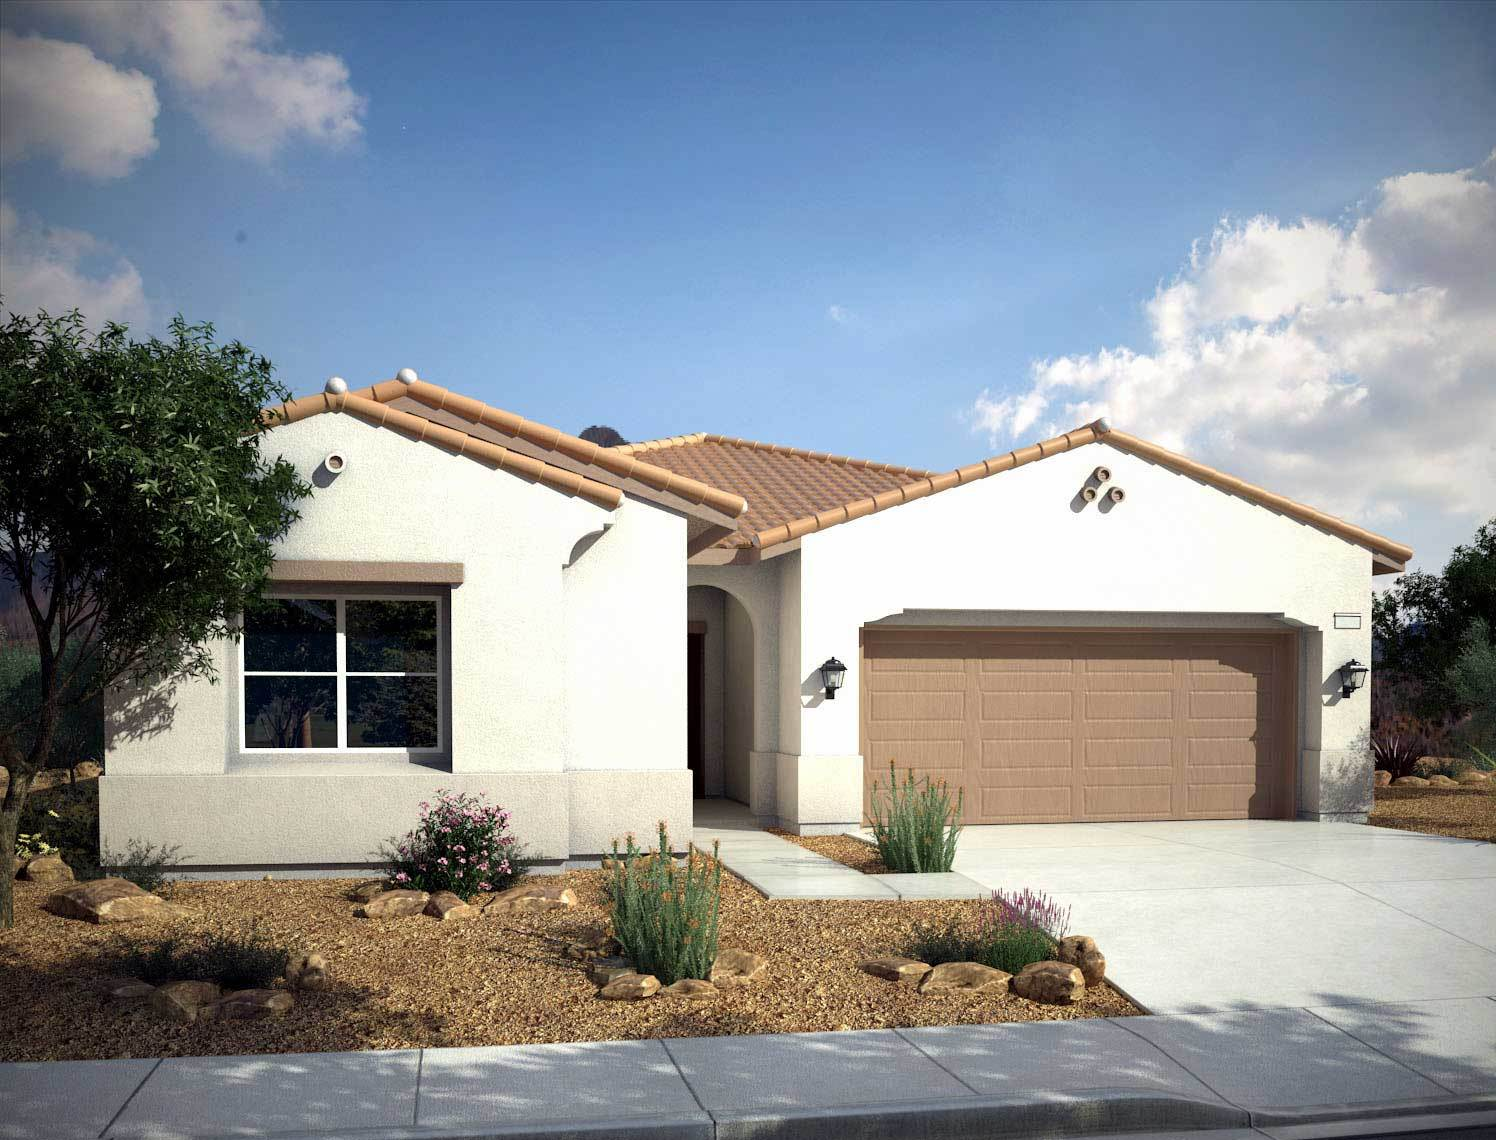 Single Family for Sale at Mountain Falls - Plan 3 - Series I - Tramonto 5413 East Volterra Pahrump, Nevada 89061 United States